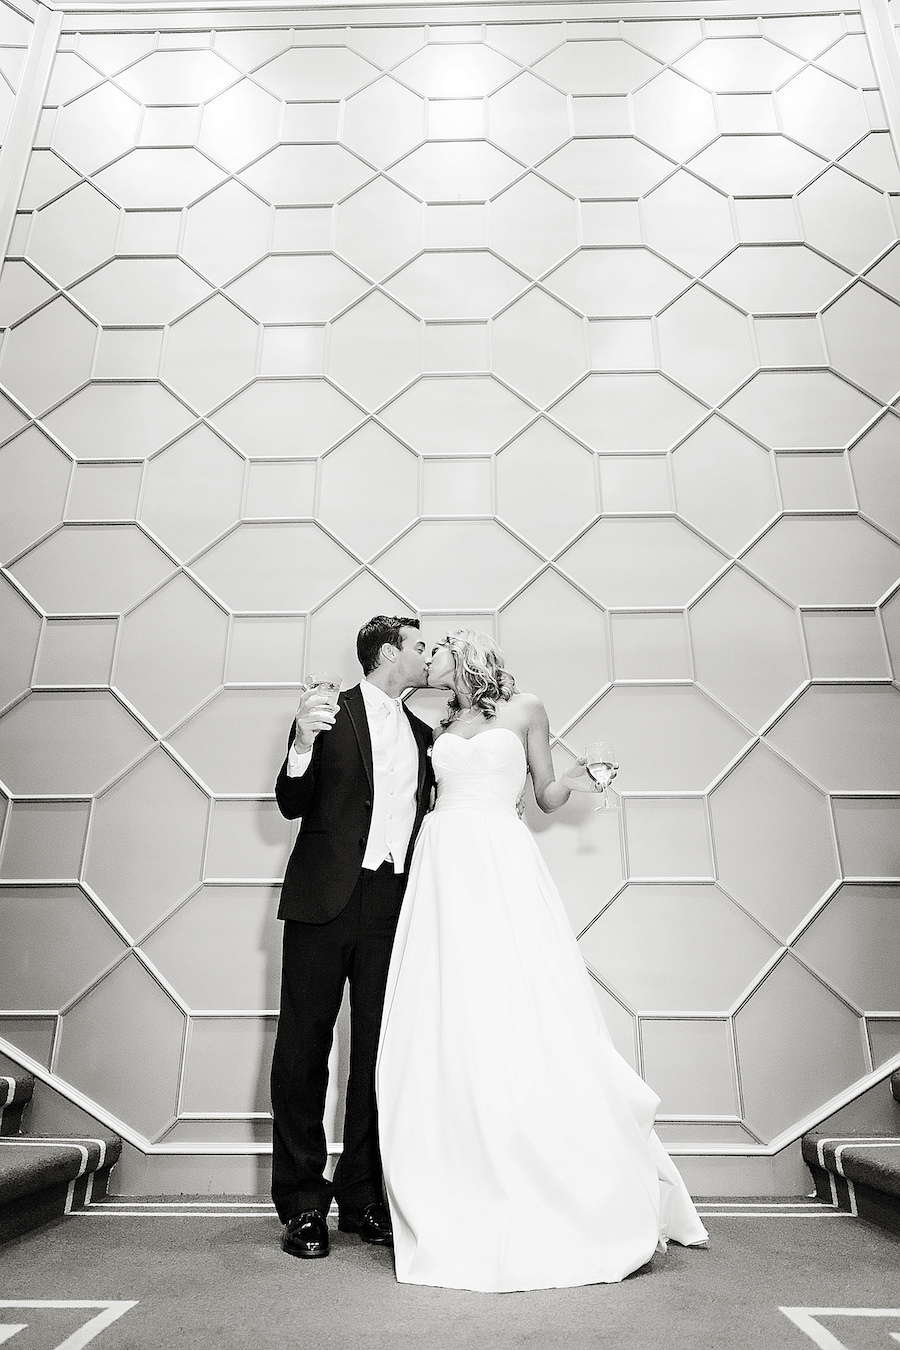 Bride and Groom Black and White Wedding Portrait at Downtown Tampa Wedding Venue The Tampa Club   Tampa Wedding Photographer Limelight Photography